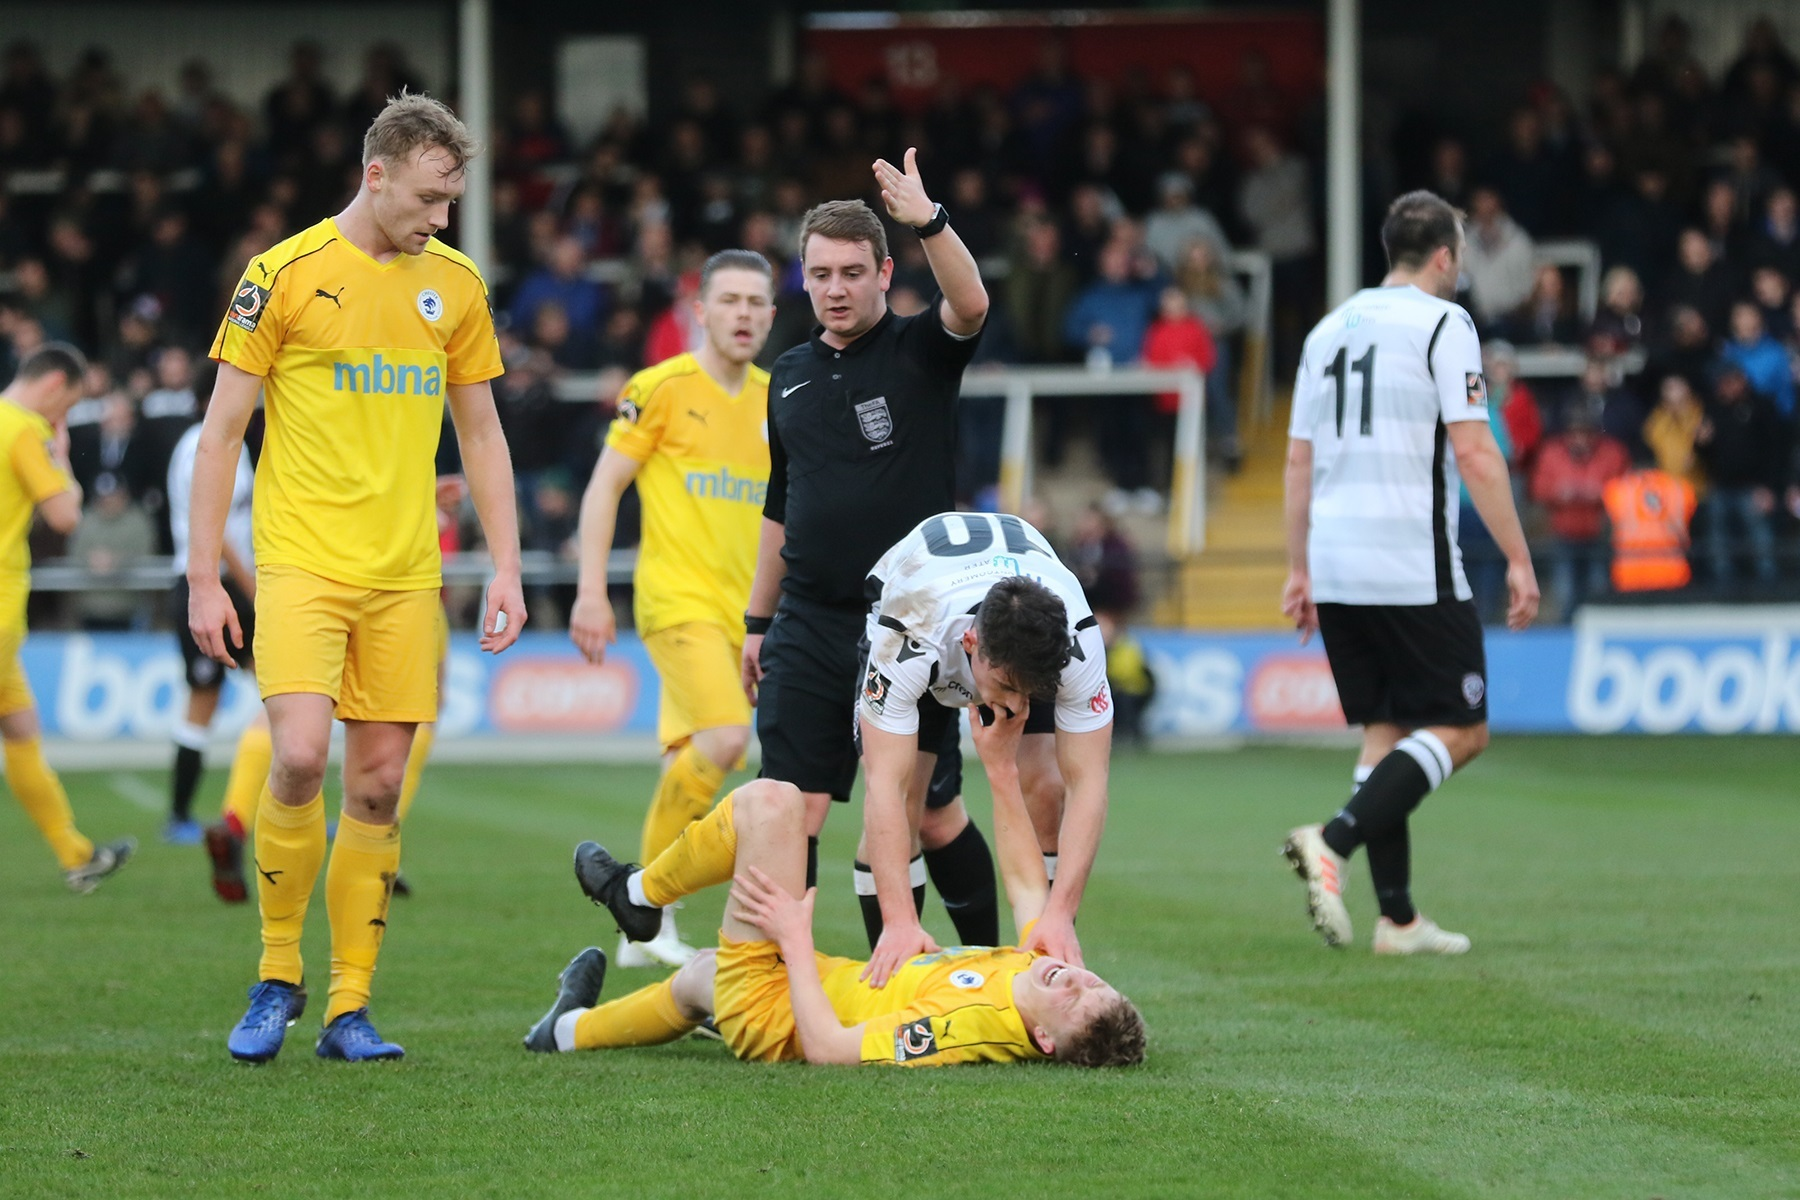 Matthew Thomson lies injured as Chester lose at Hereford (pic Steve Niblett)